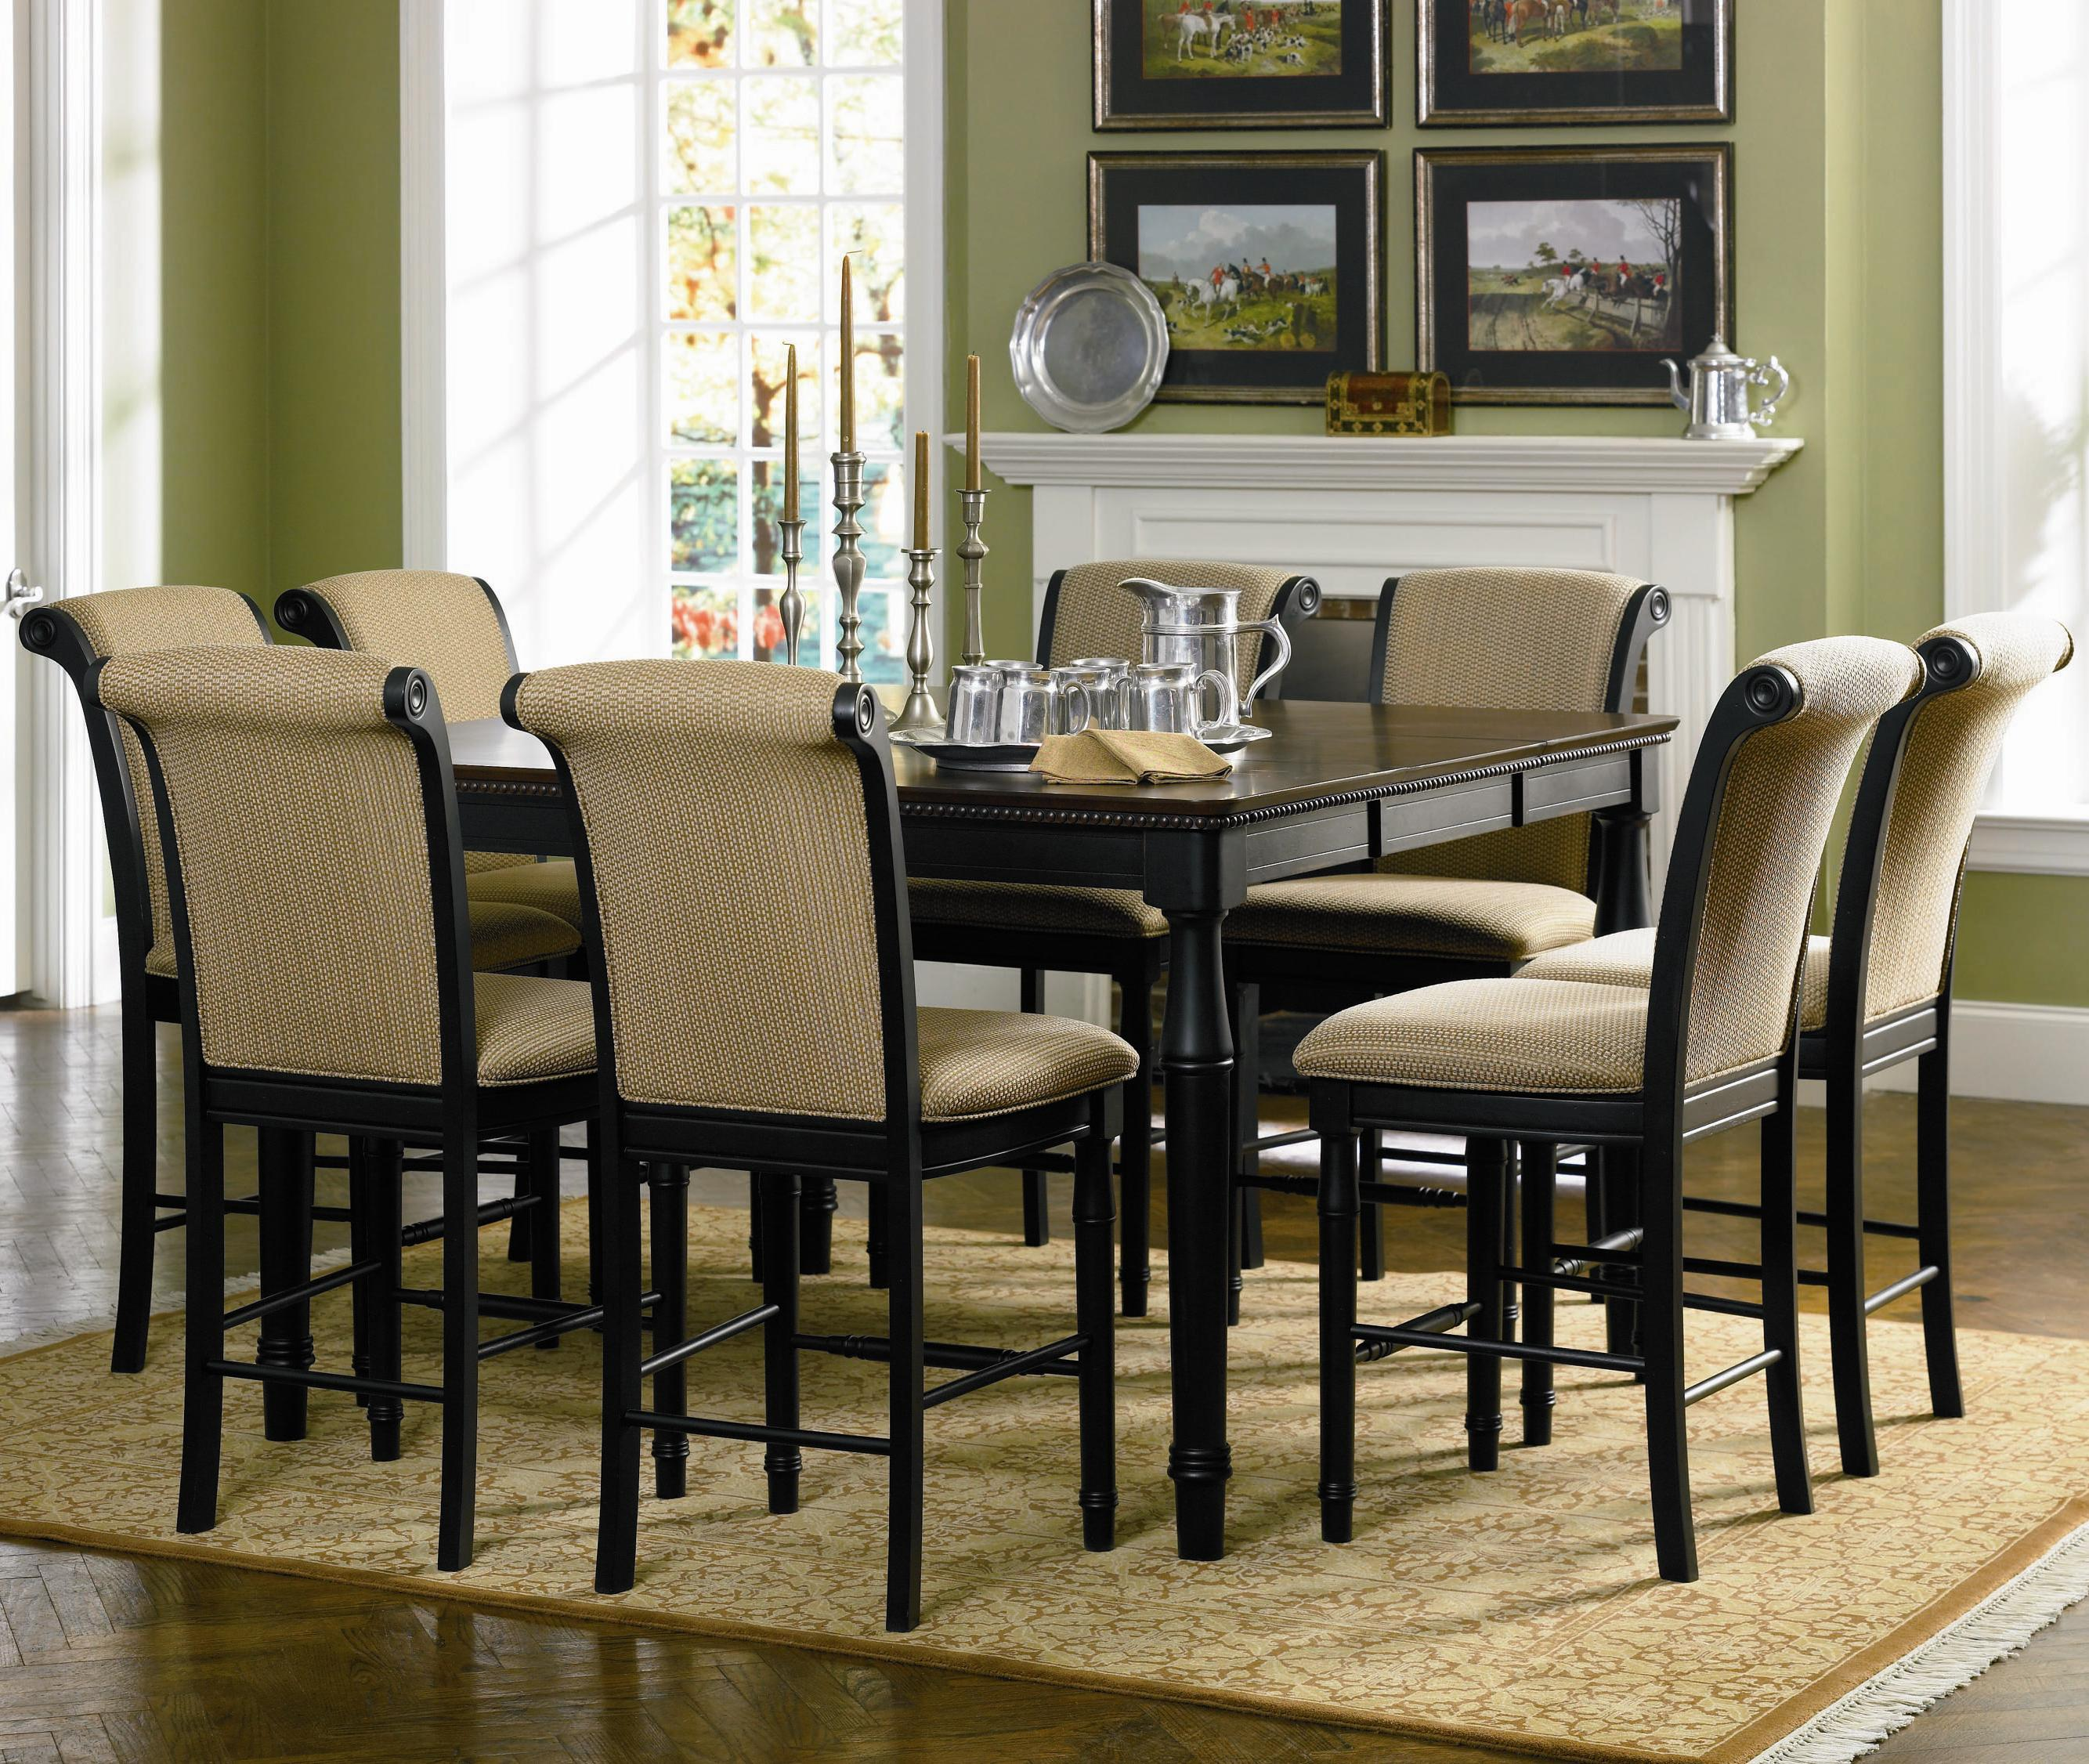 Countertop Dining Room Sets coaster cabrillo counter height dining table with leaf - coaster